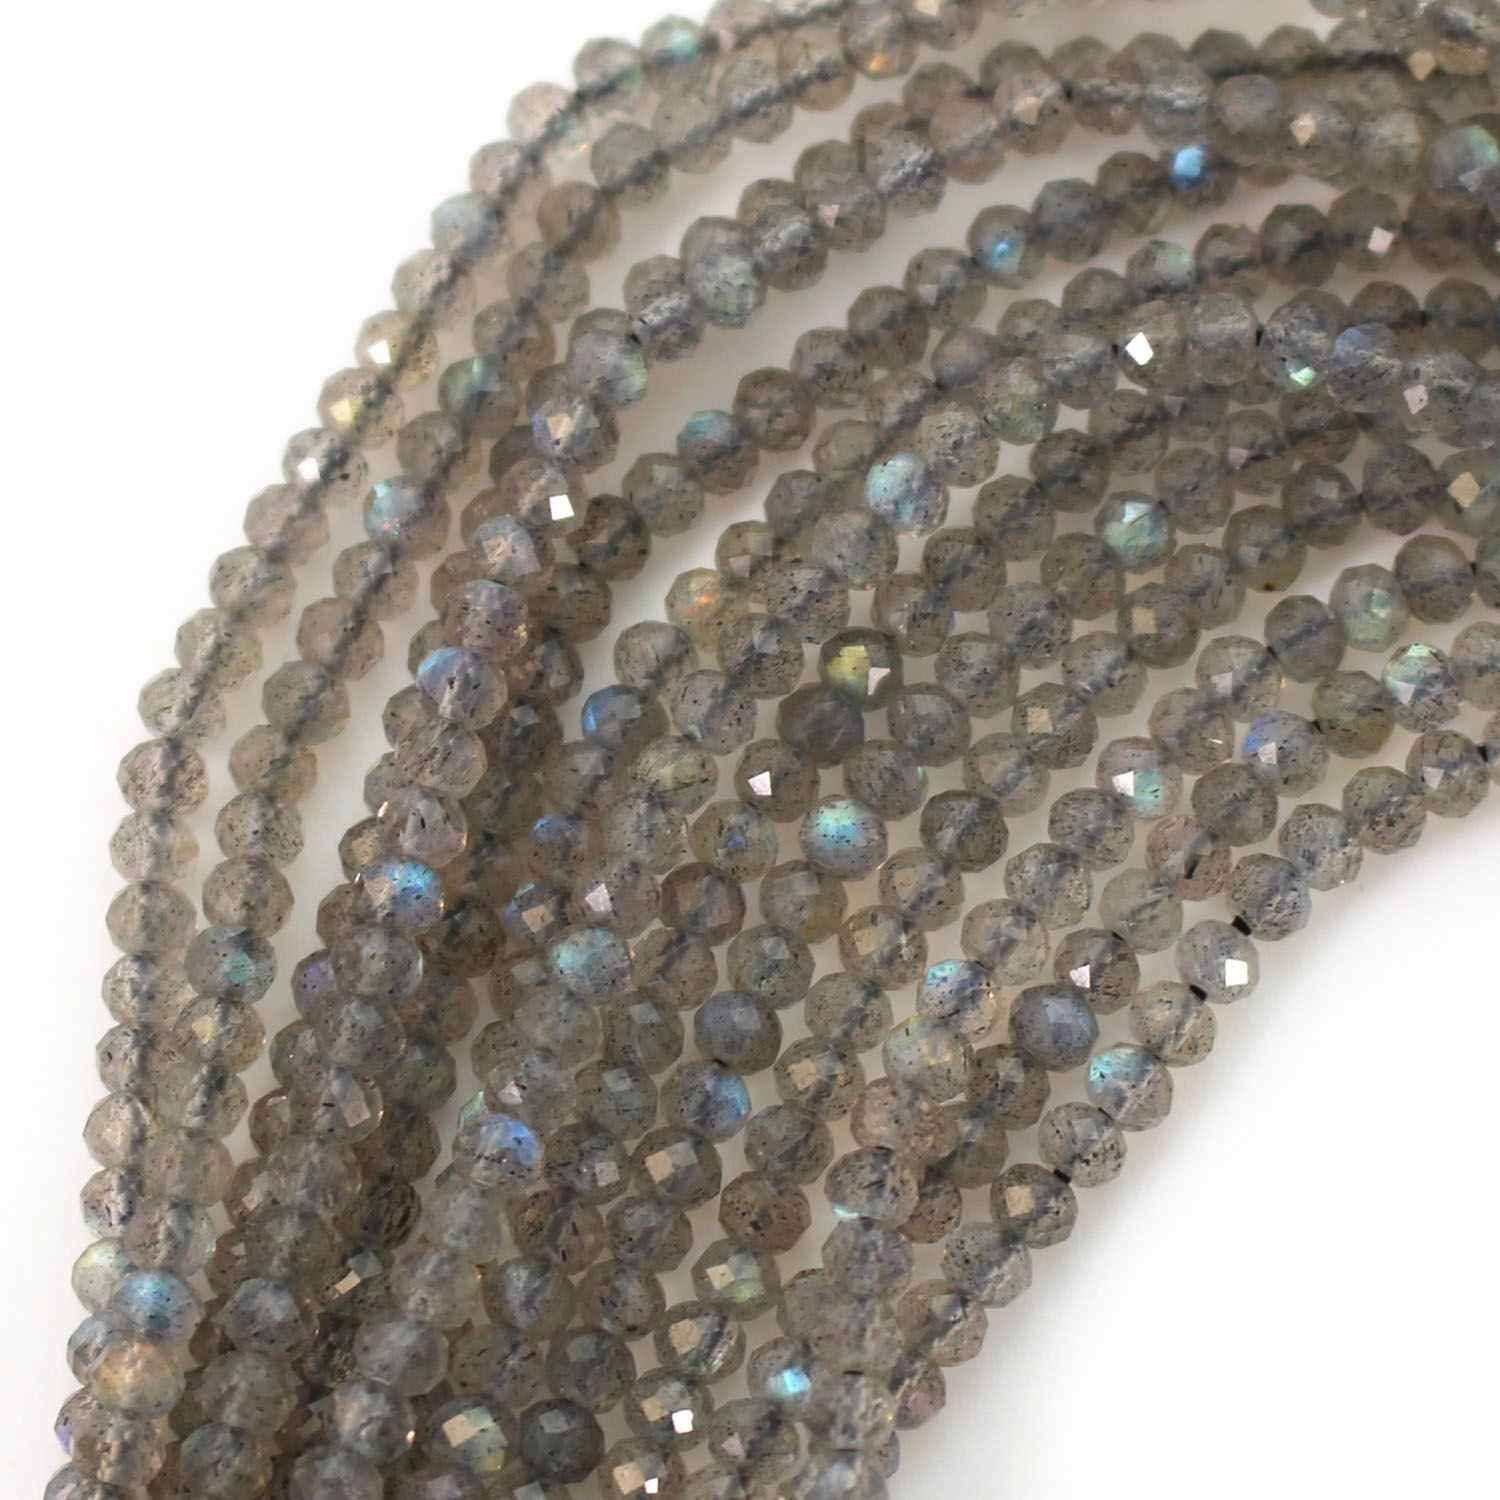 Gemstone beads - Labradorite Faceted Rondelle - 2.5- 3mm - 14 inches full strand